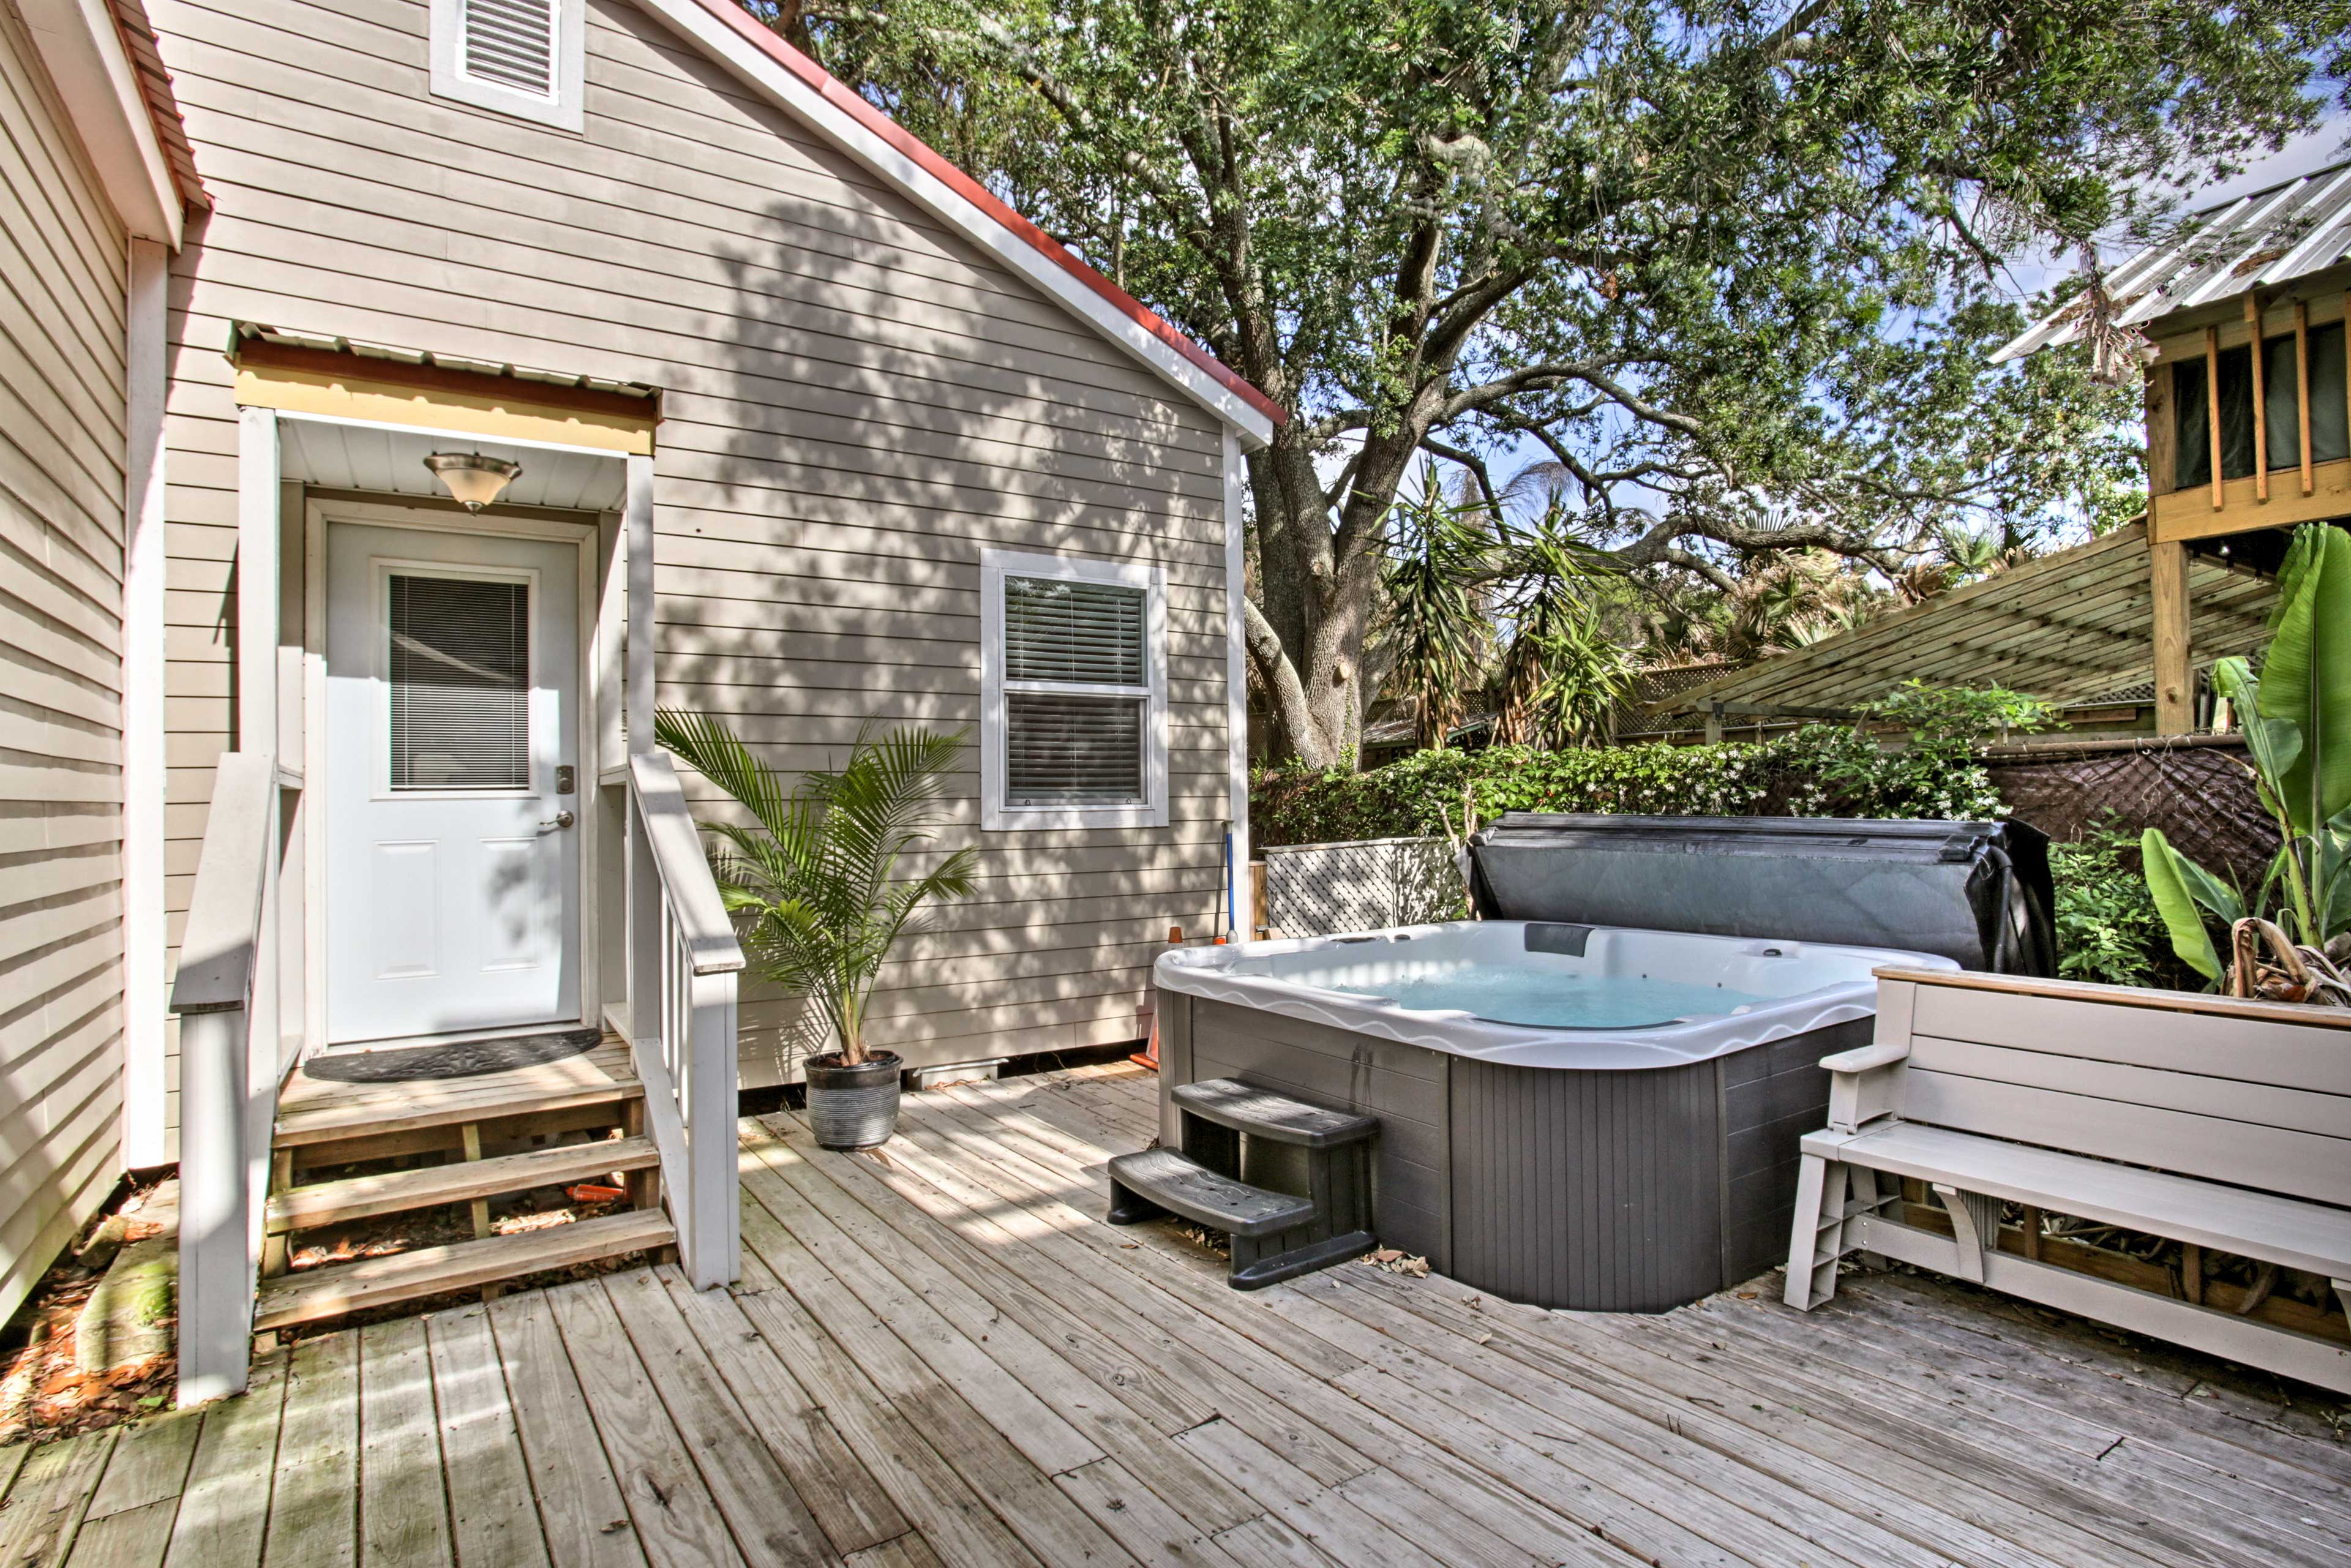 You'll even have access to this private hot tub!